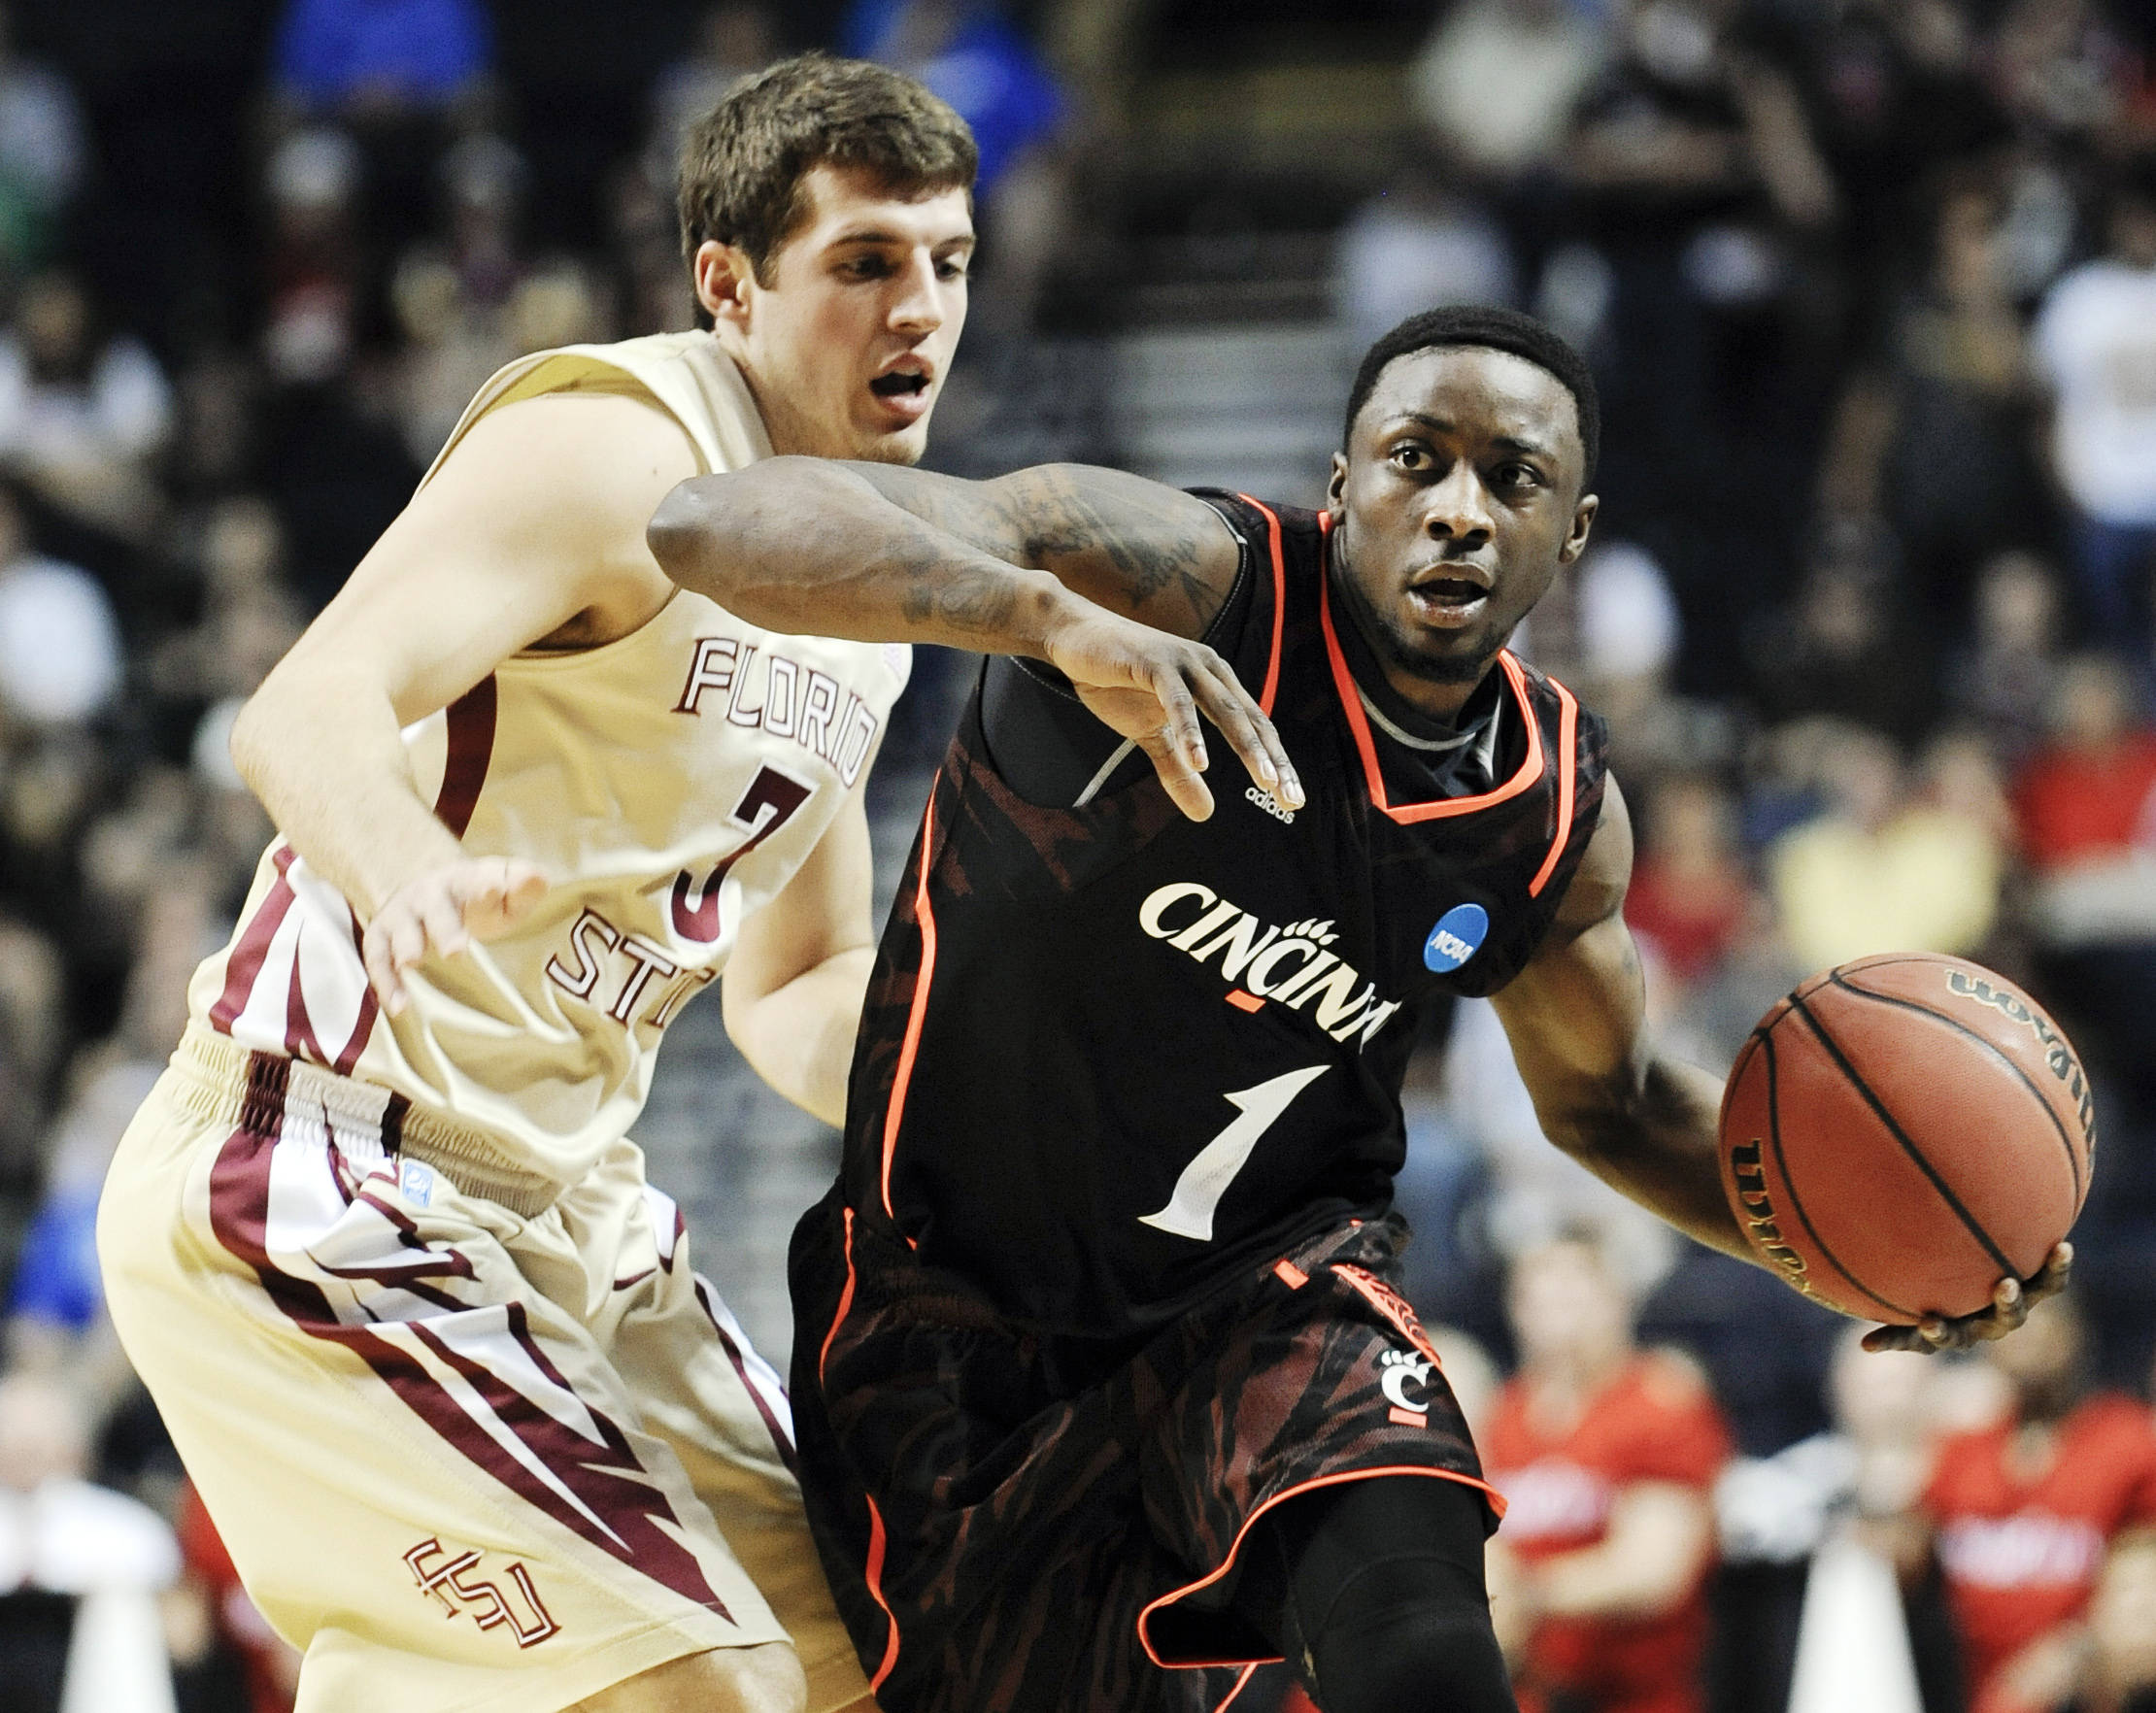 Cincinnati guard Cashmere Wright (1) drives against Florida State guard Luke Loucks (3). (AP Photo/Donn Jones)